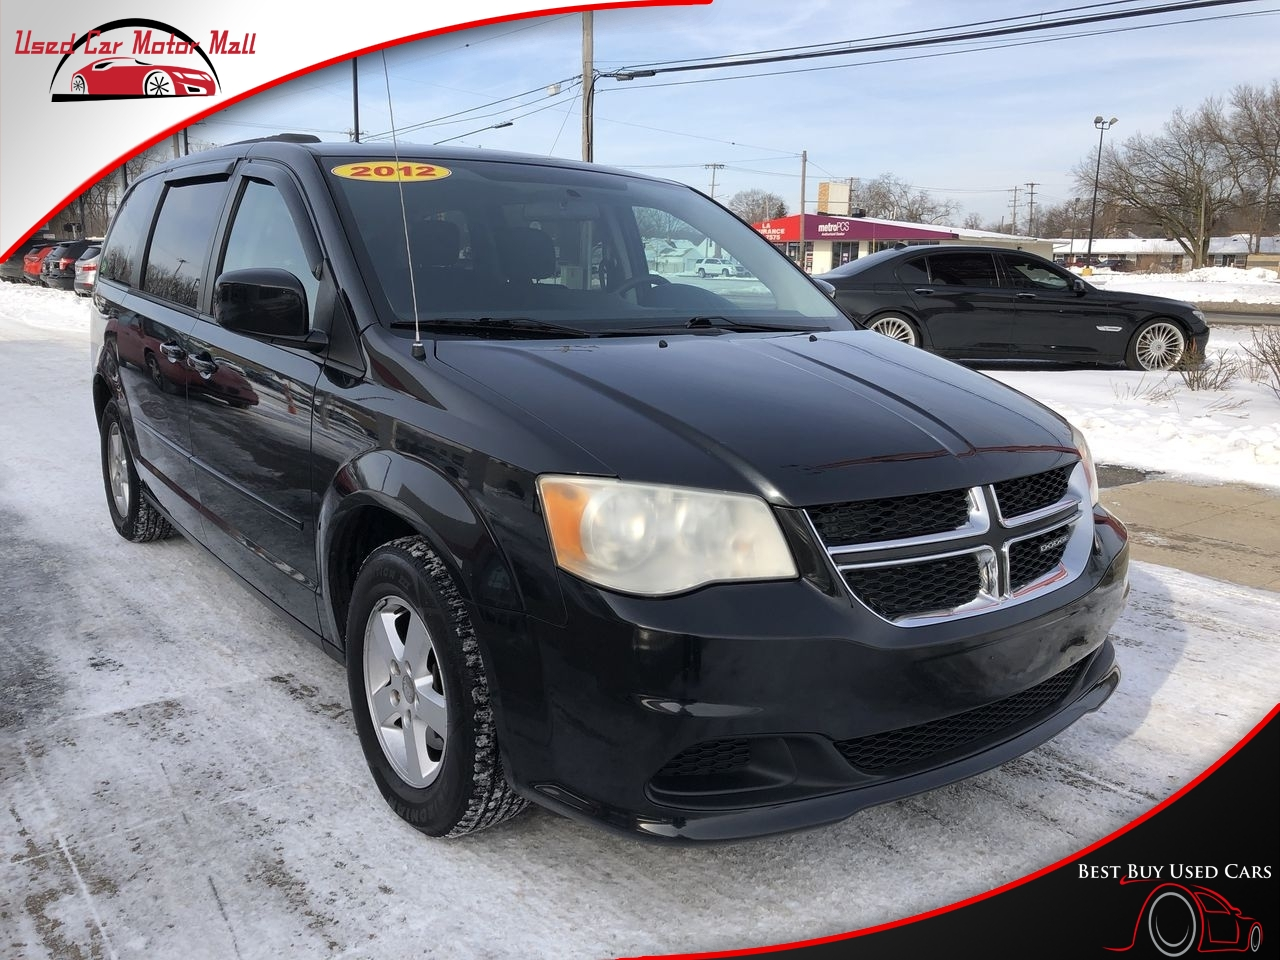 2016 Dodge Grand Caravan SXT FWD, 327824, Photo 1